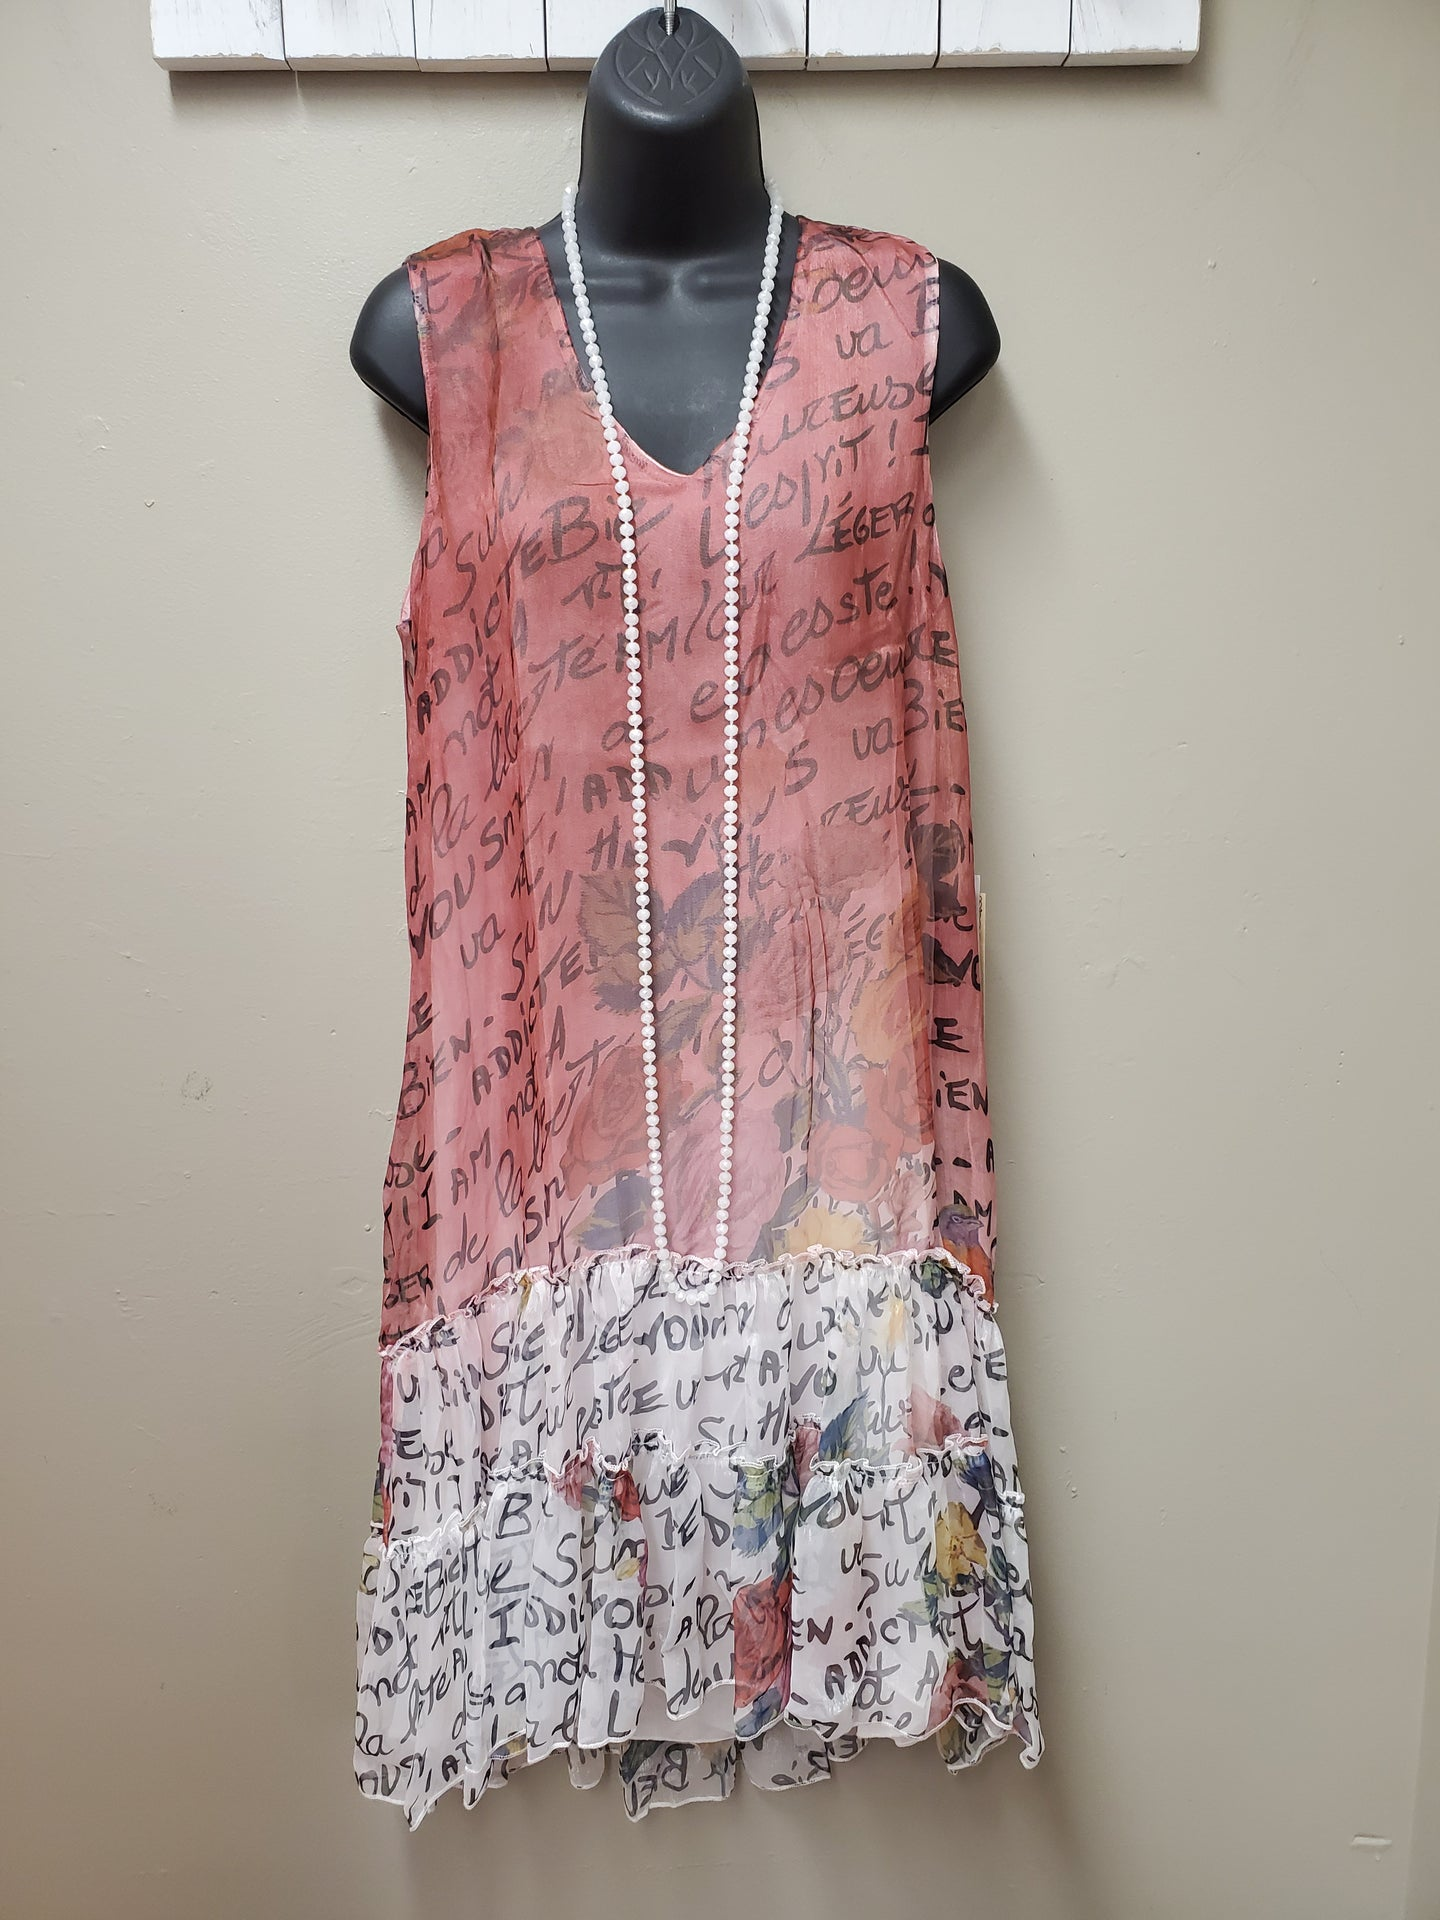 2 Color Ways- Sophisticated Dress with Fun Print in Shipshewana - You-nique Bou-tique